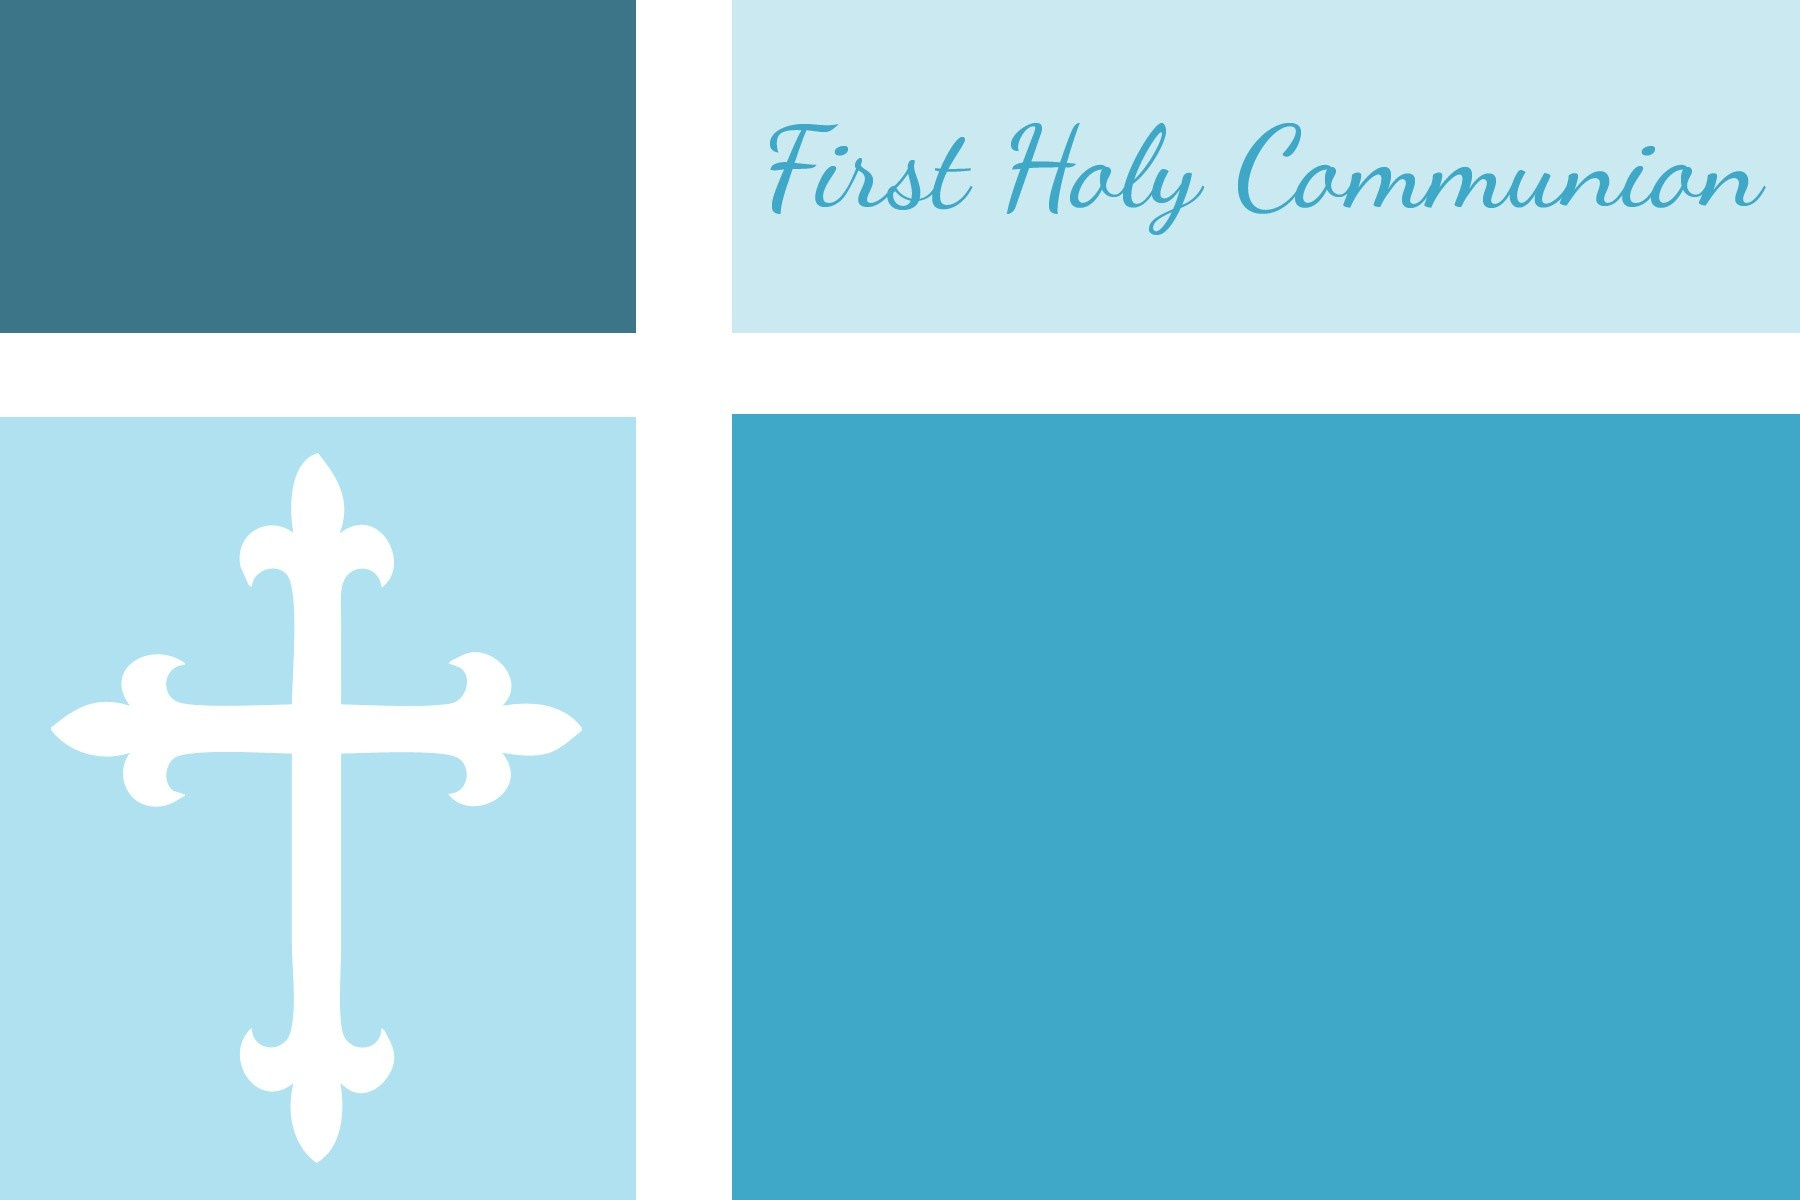 First Communion Invitations Template the Cheapest Way - Bybloggers - Free Printable First Communion Invitation Templates